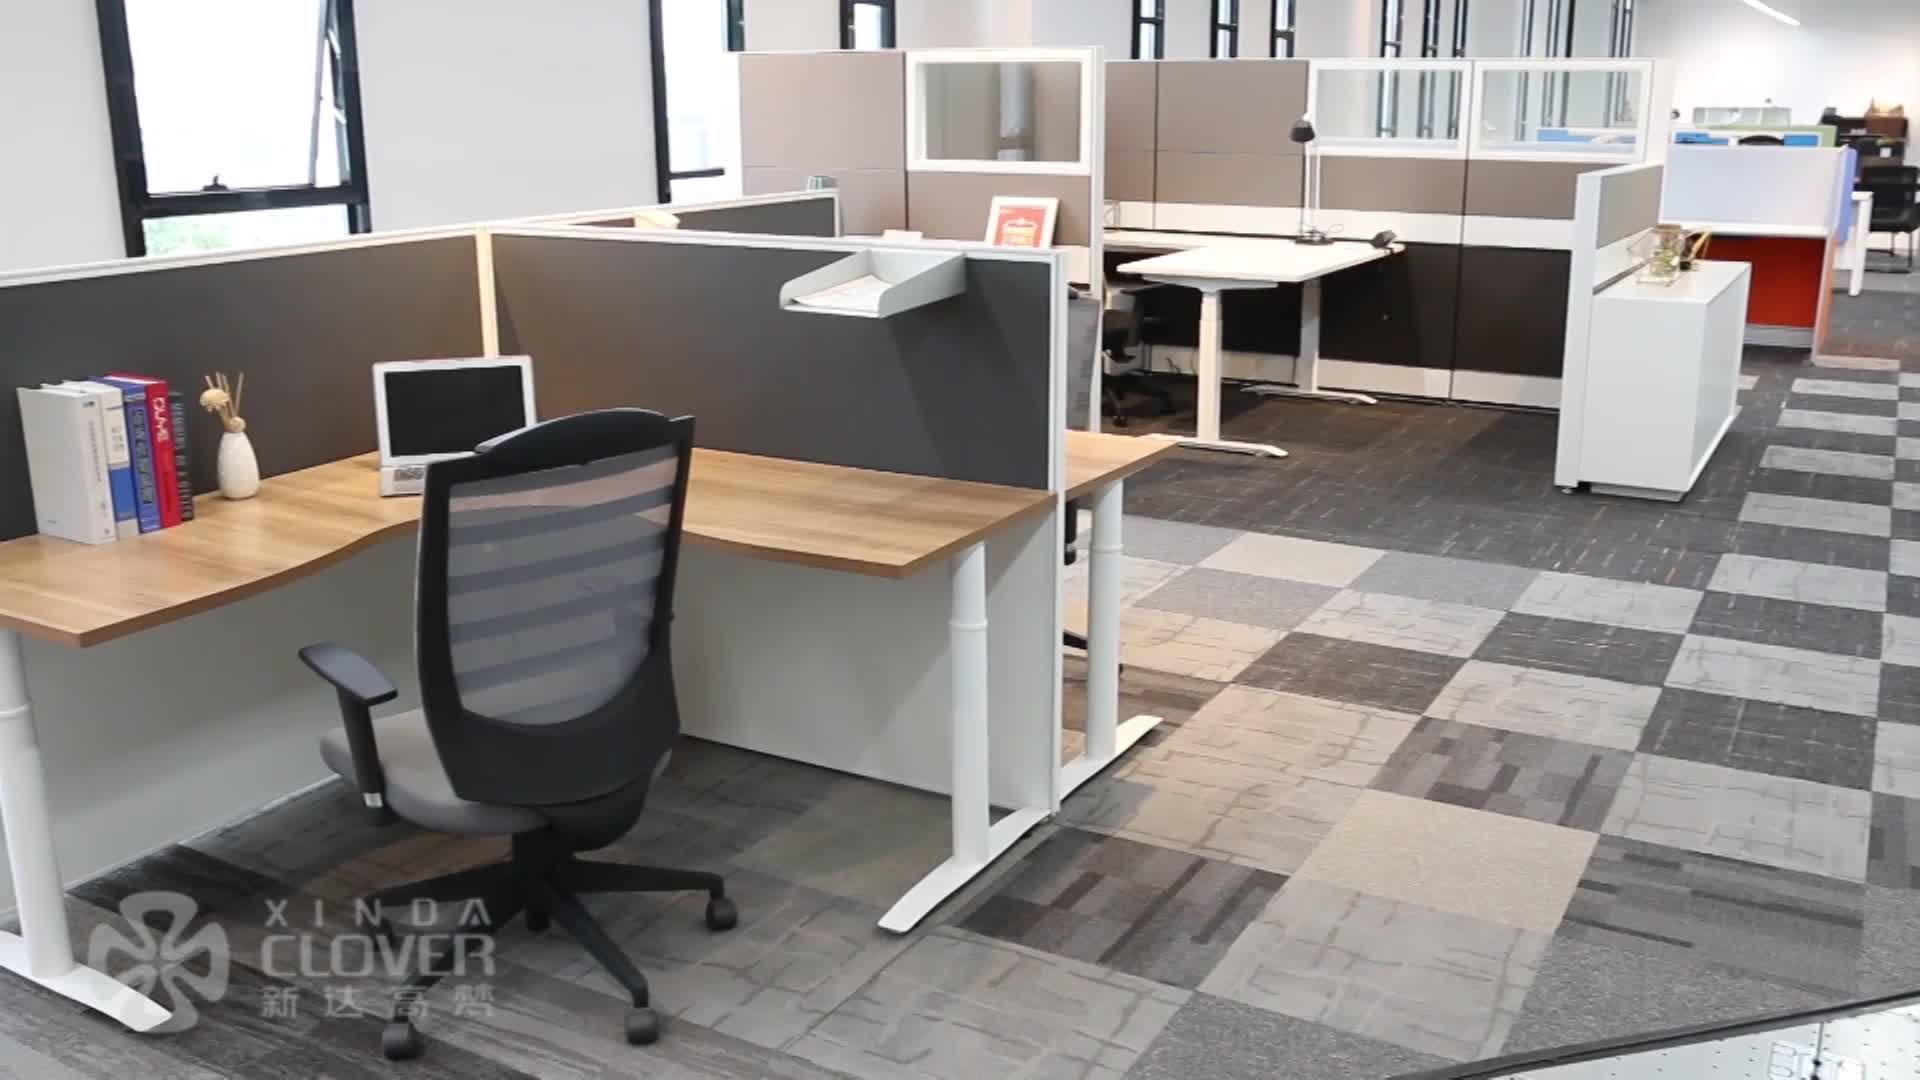 Customized T3 series used 32mm thickness aluminum partitions modular single side office cubicle 2 person workstation